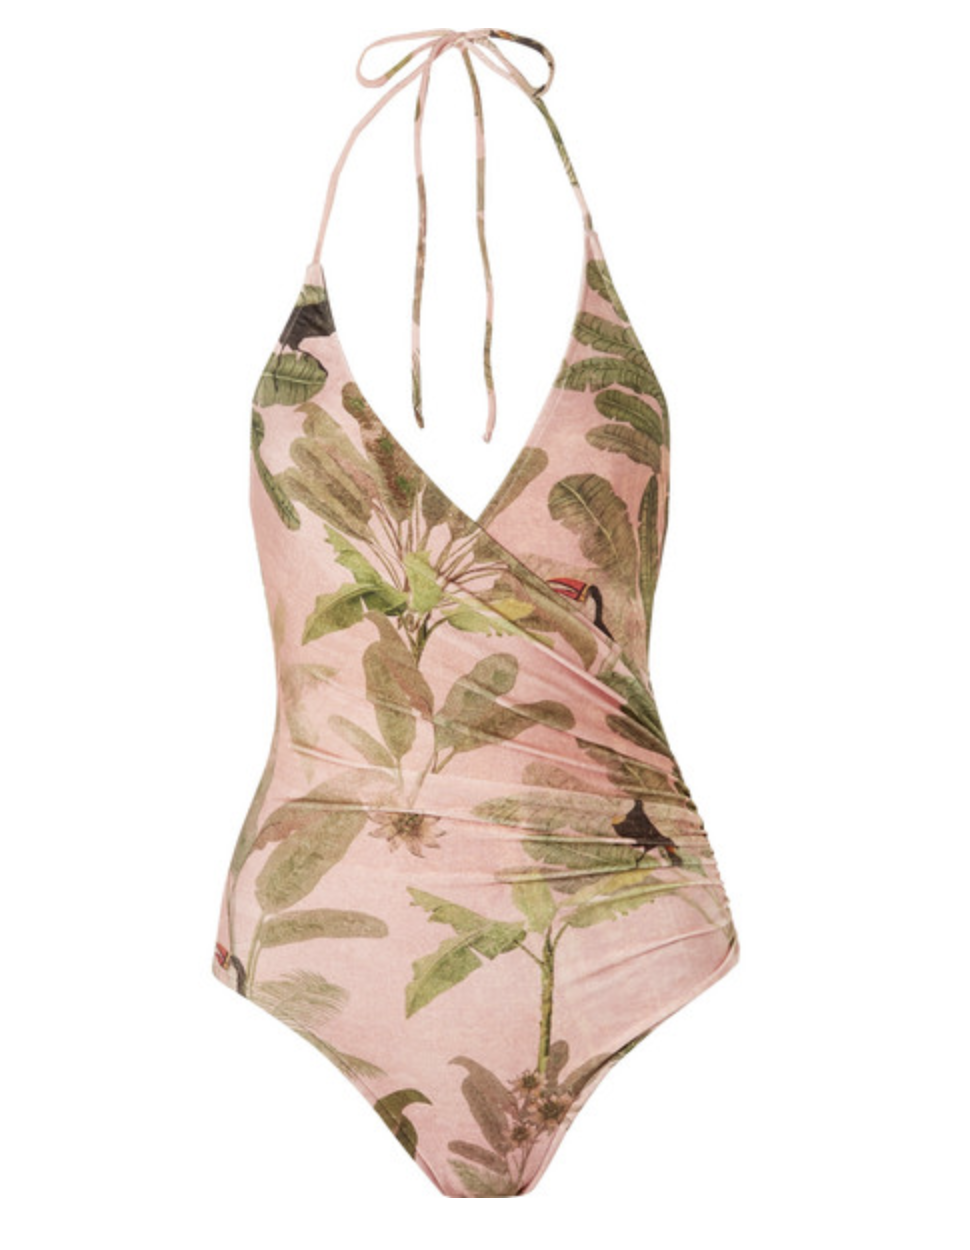 Adriana Degreas Swimsuit, $315